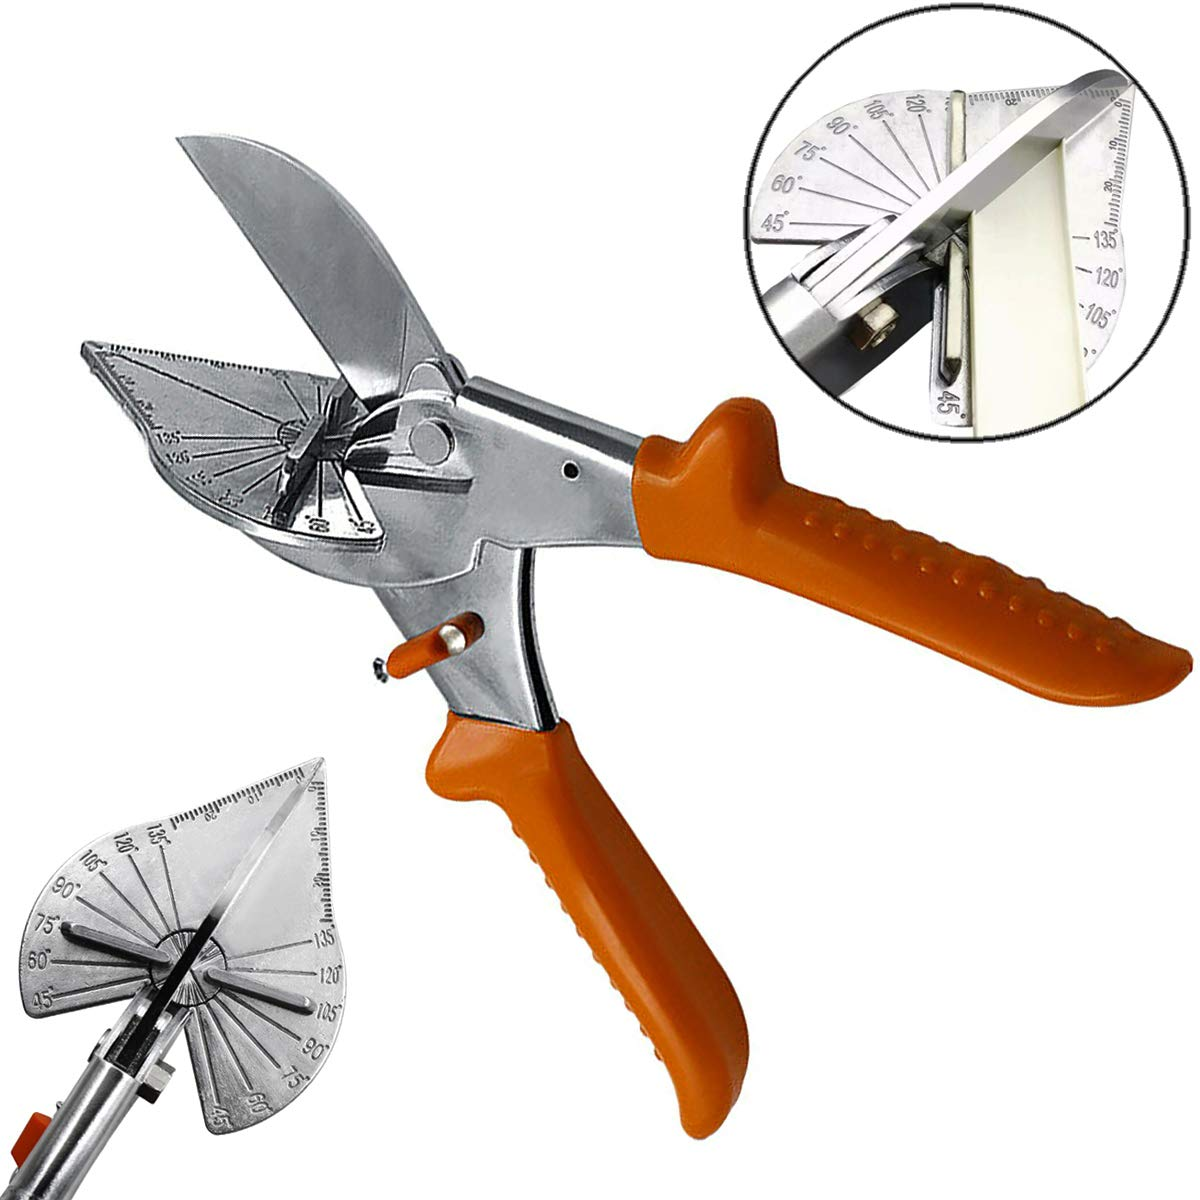 QISF Gasket Shear Multi Angle Miter Hand Shear Trim Tool,45 to 135 Degree SK5 Steel Blade Adjustable Trunking Shear for Plumbers Electricians Carpenters